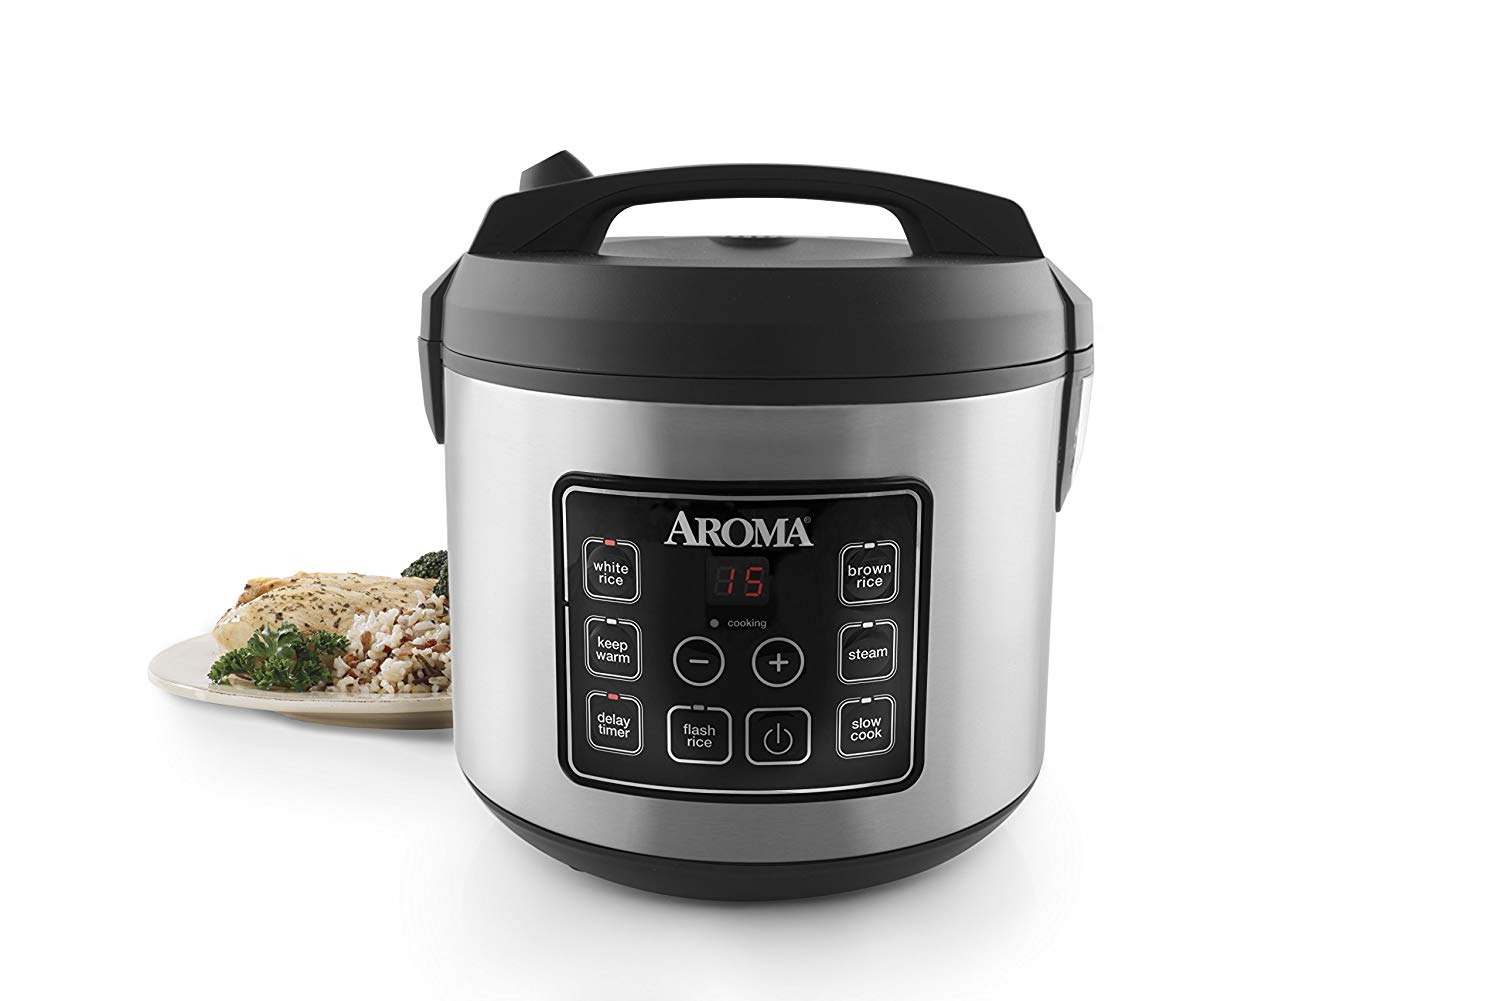 Aroma® housewares rice cooker, slow cooker, and food steamer